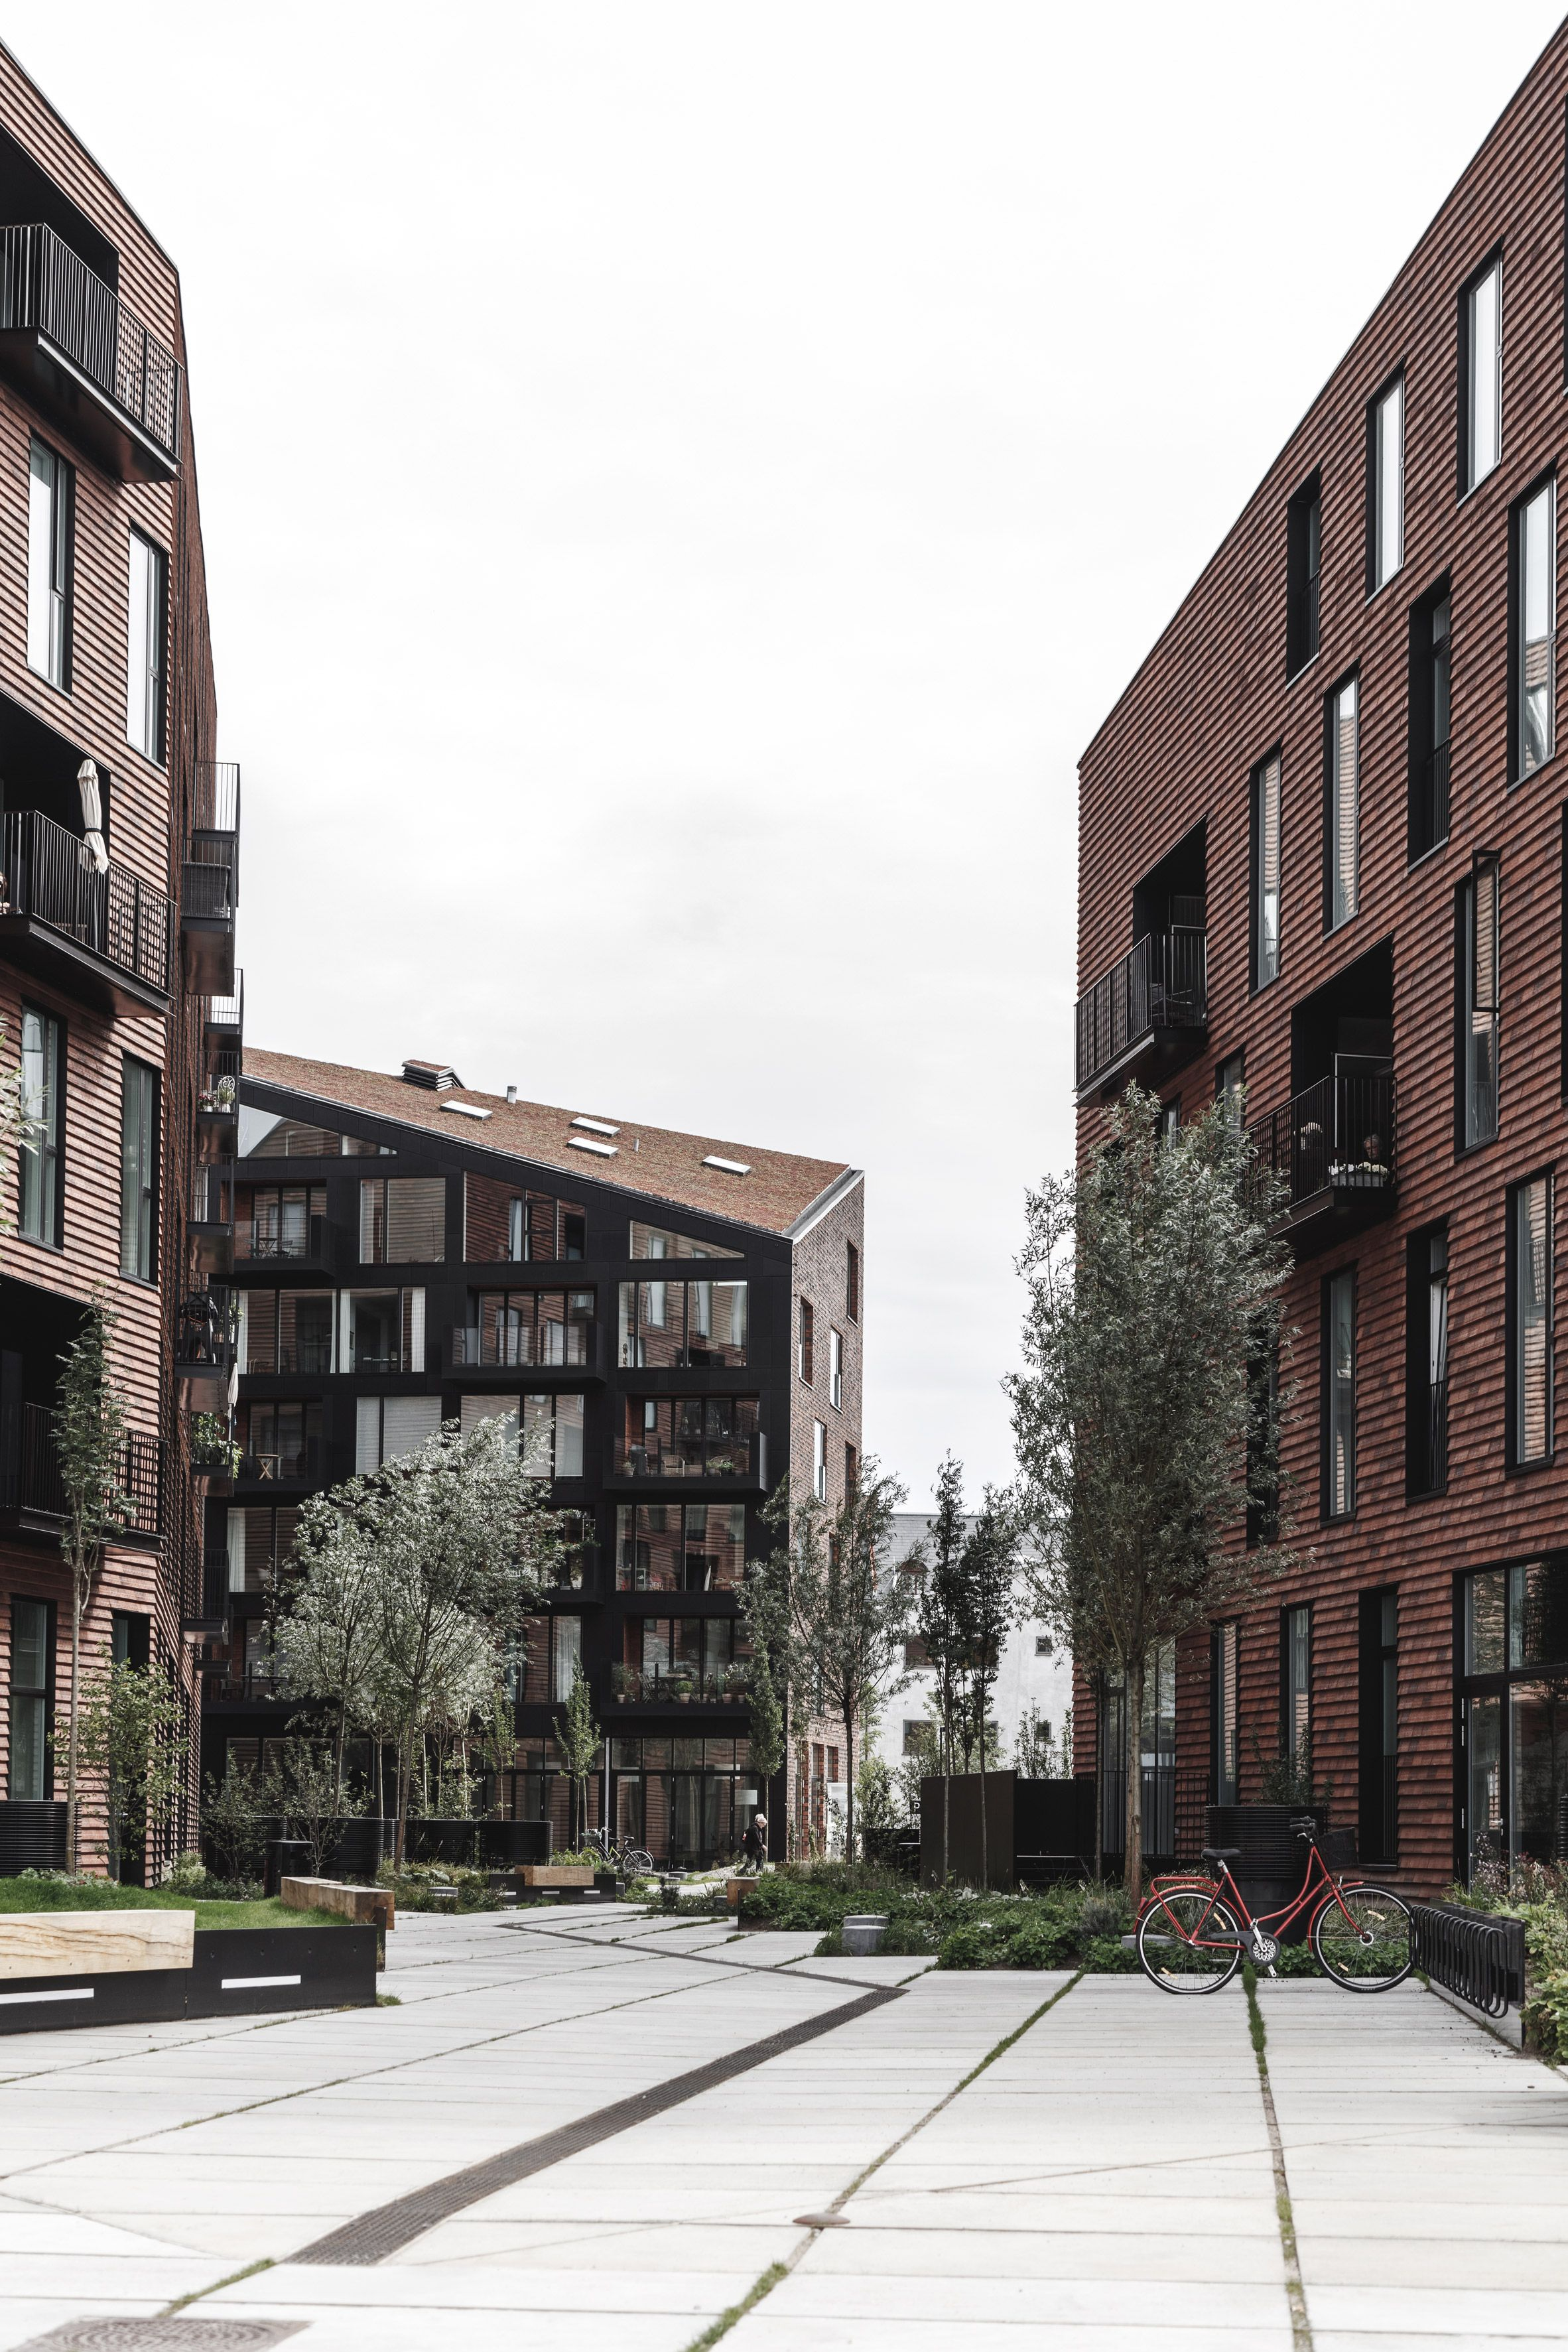 The faceted roofline and brick surfaces of these apartment blocks by COBE and Vilhelm Lauritzen Architects take cues from warehouses on Copenhagen harbour